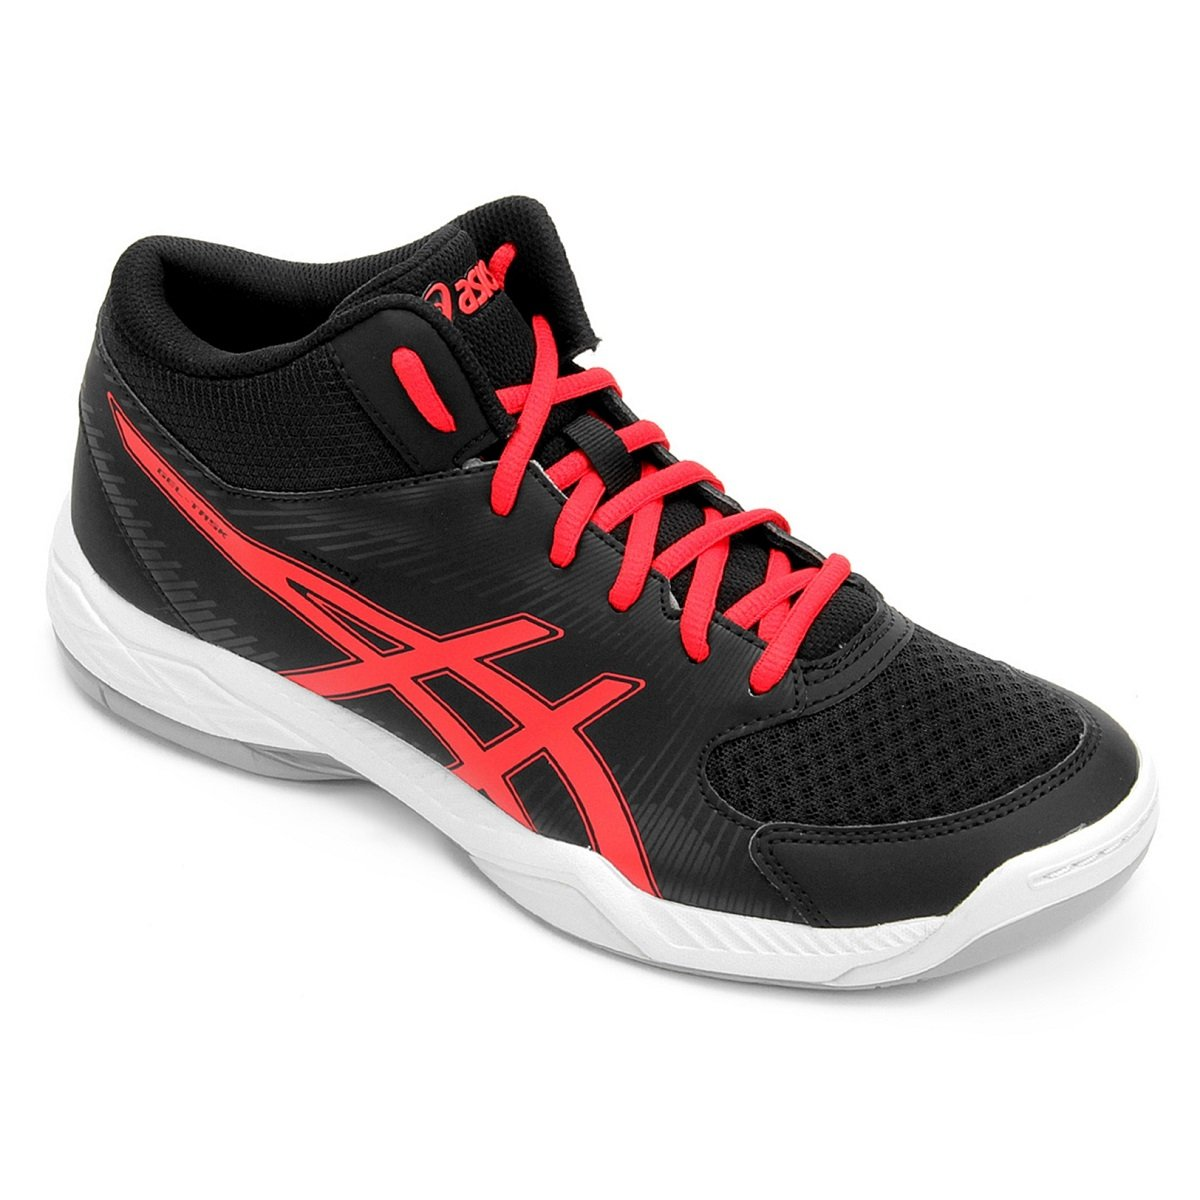 Tênis Asics Gel Task MT Black/Red Alert